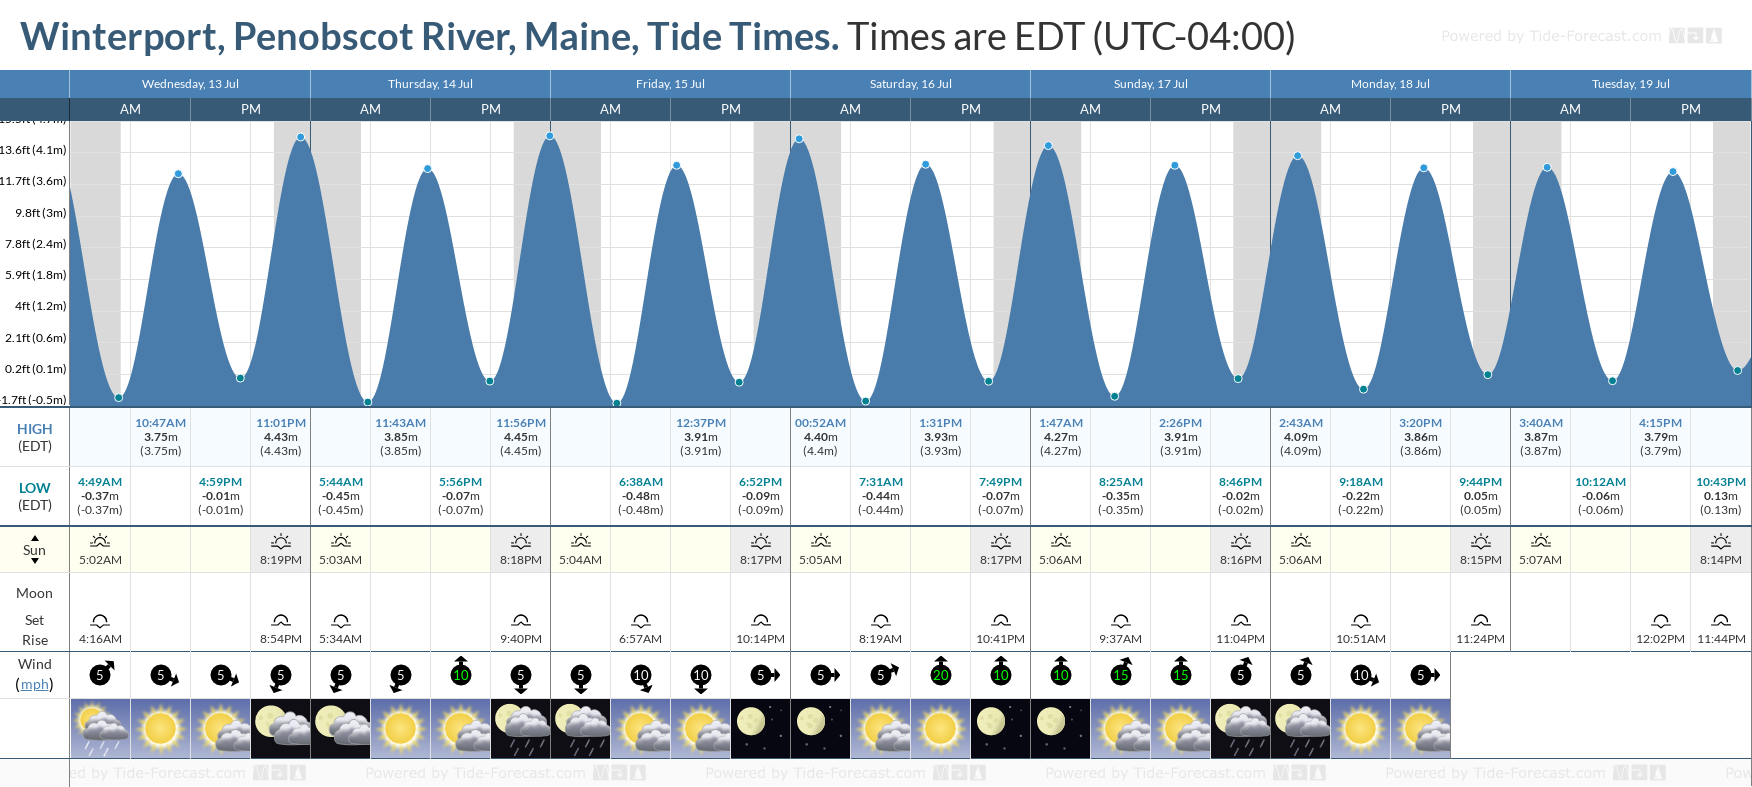 Winterport, Penobscot River, Maine Tide Chart including high and low tide tide times for the next 7 days